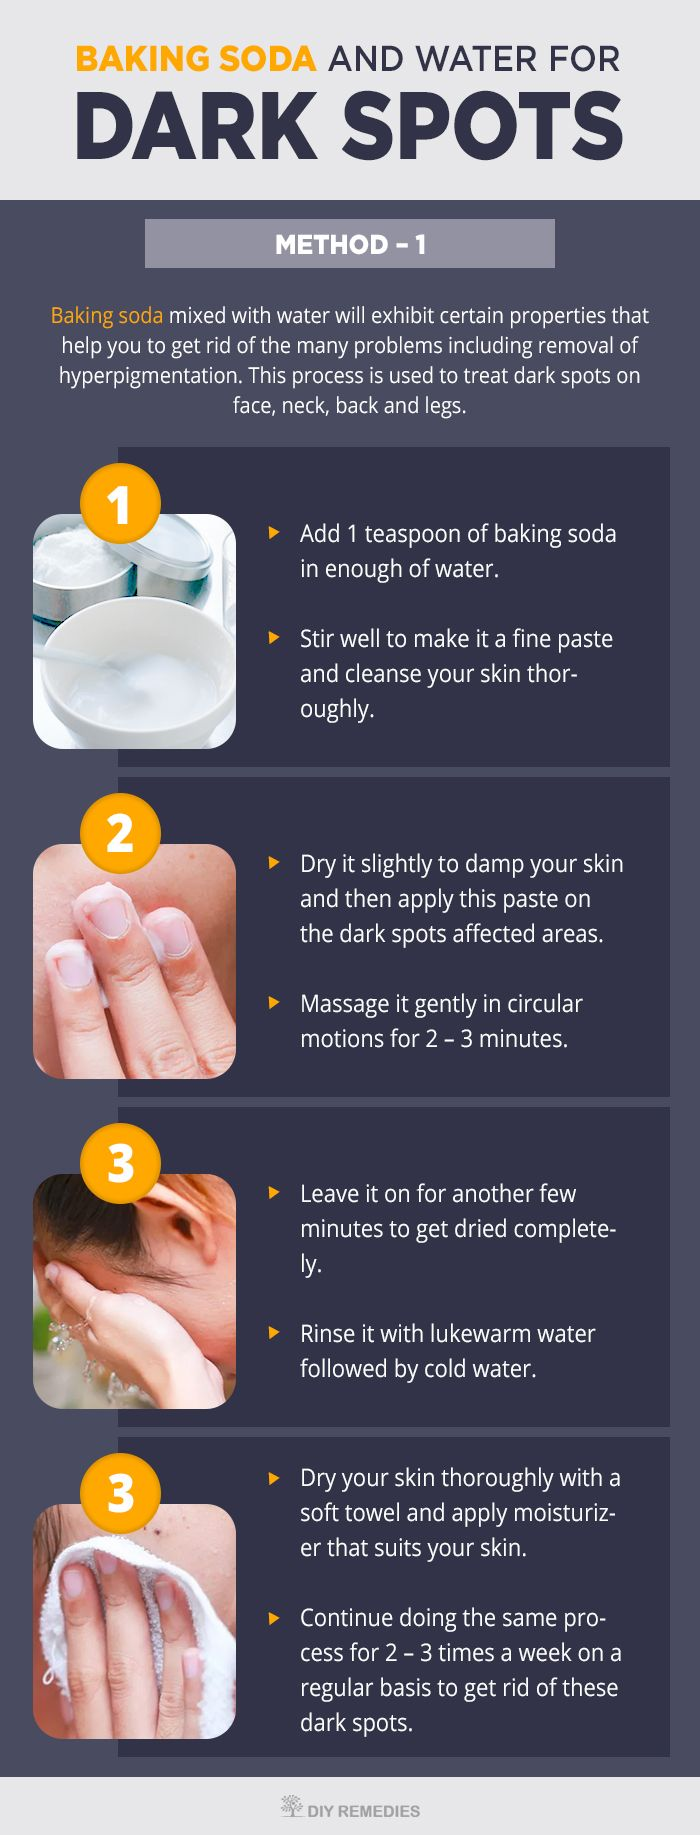 How To Use Baking Soda For Dark Spots    Baking soda mixed with water will exhibit certain properties that help you to get rid of the many problems including removal of hyperpigmentation. This process is used to treat dark spots on face, neck, back and legs.    #Darksports #BakingSoda